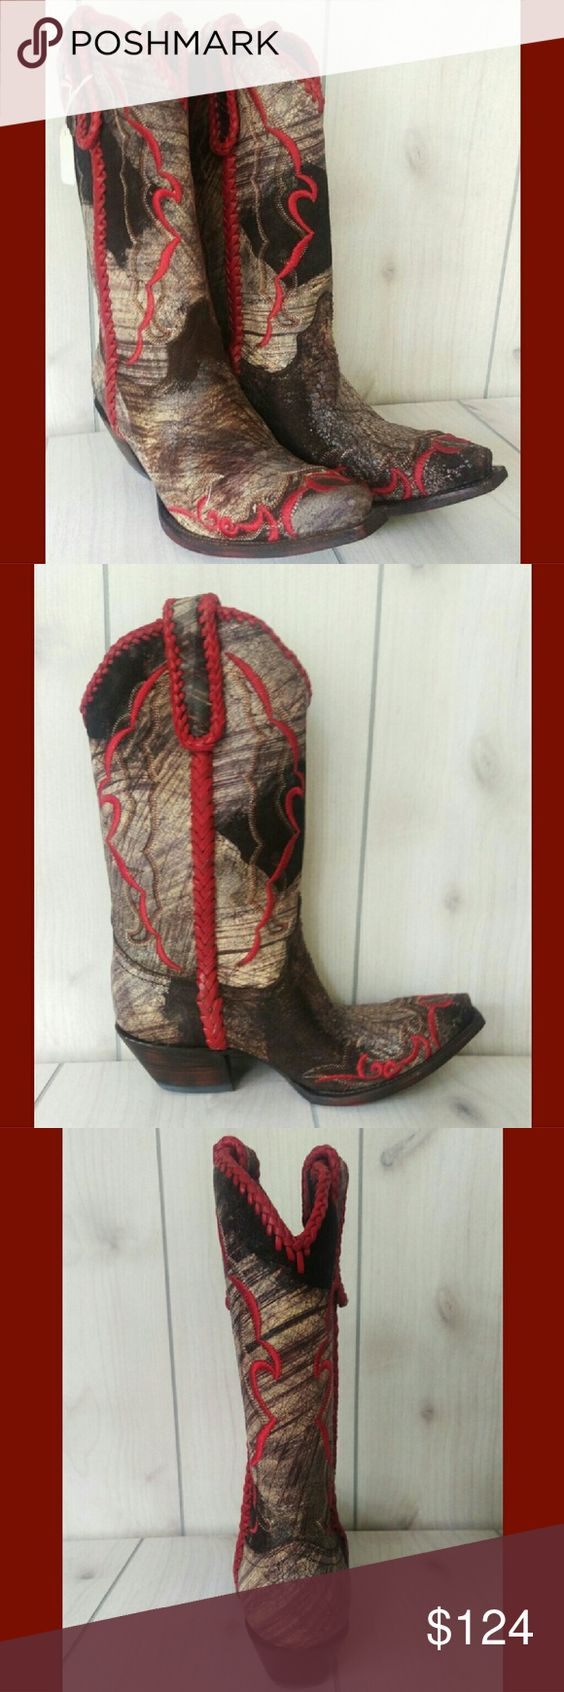 cowgirl boots charlie 1 horse cafe brushed calf nwt